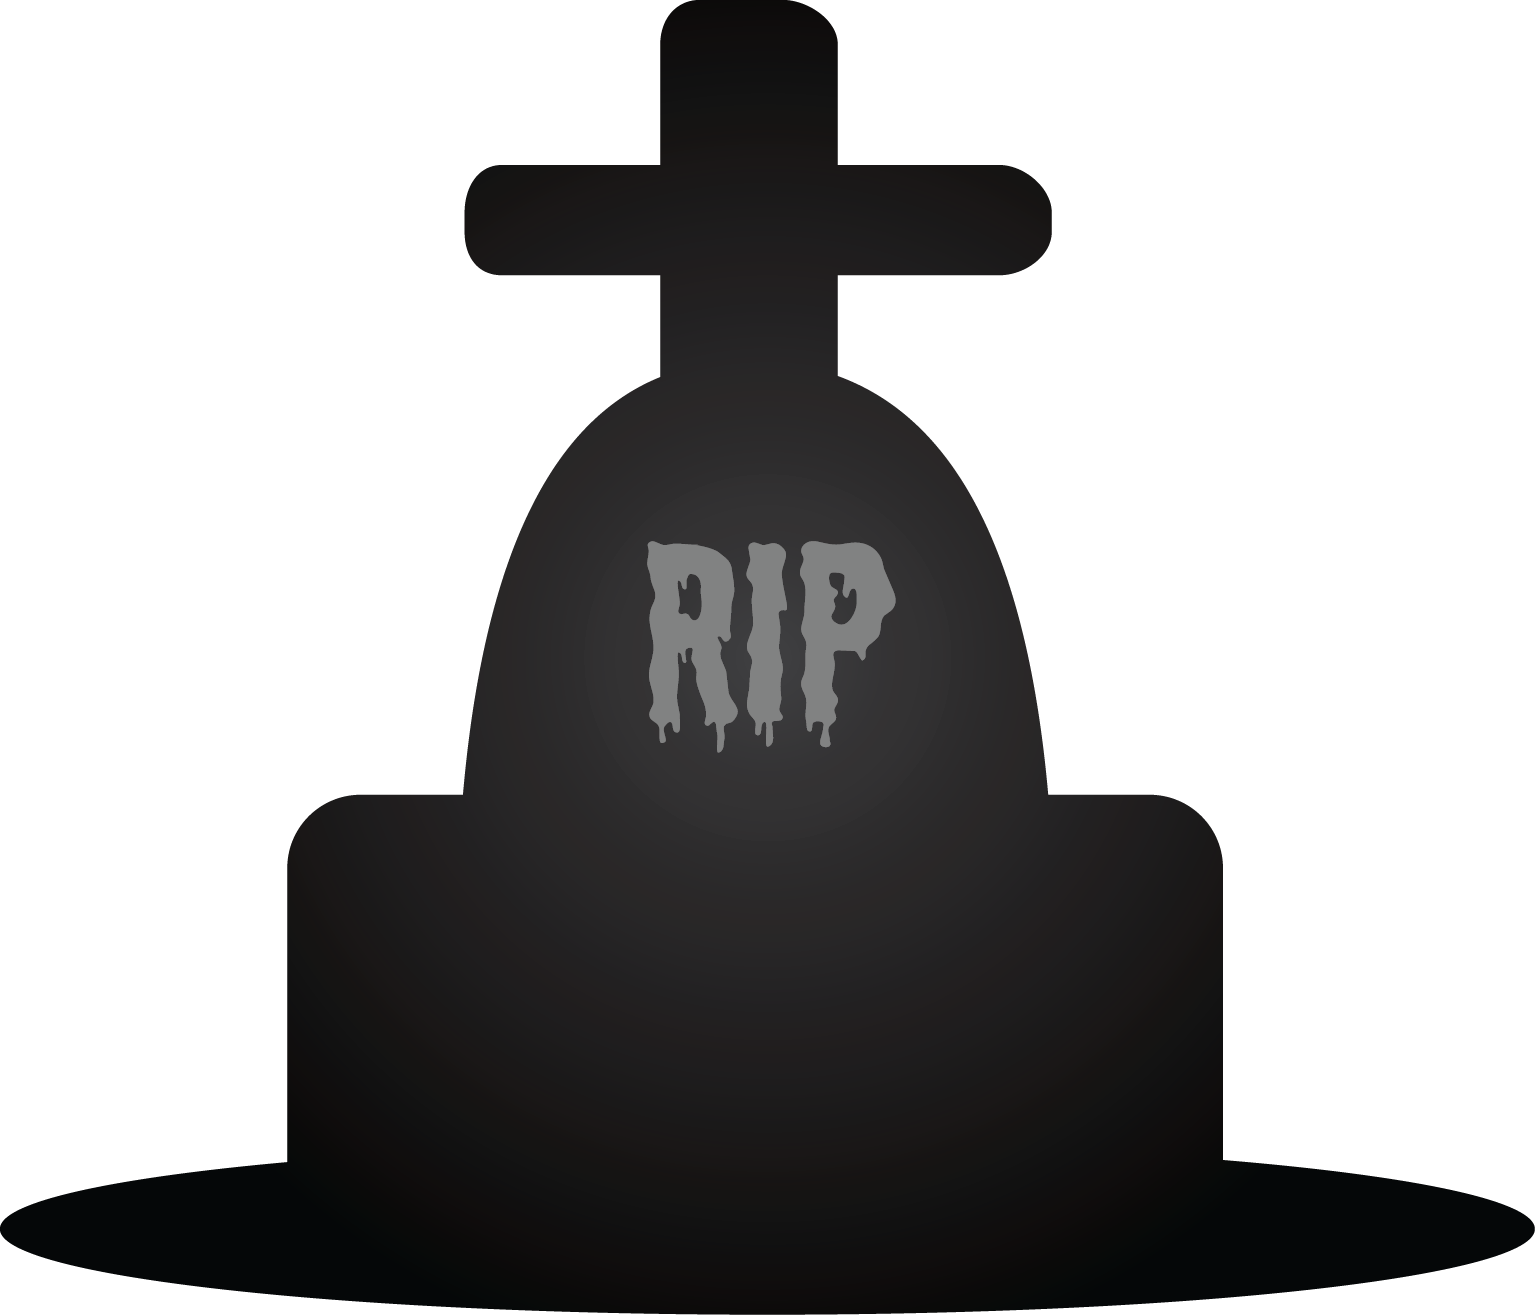 Cemetery cross clipart clipart royalty free stock Gravestones Clipart (55+) clipart royalty free stock